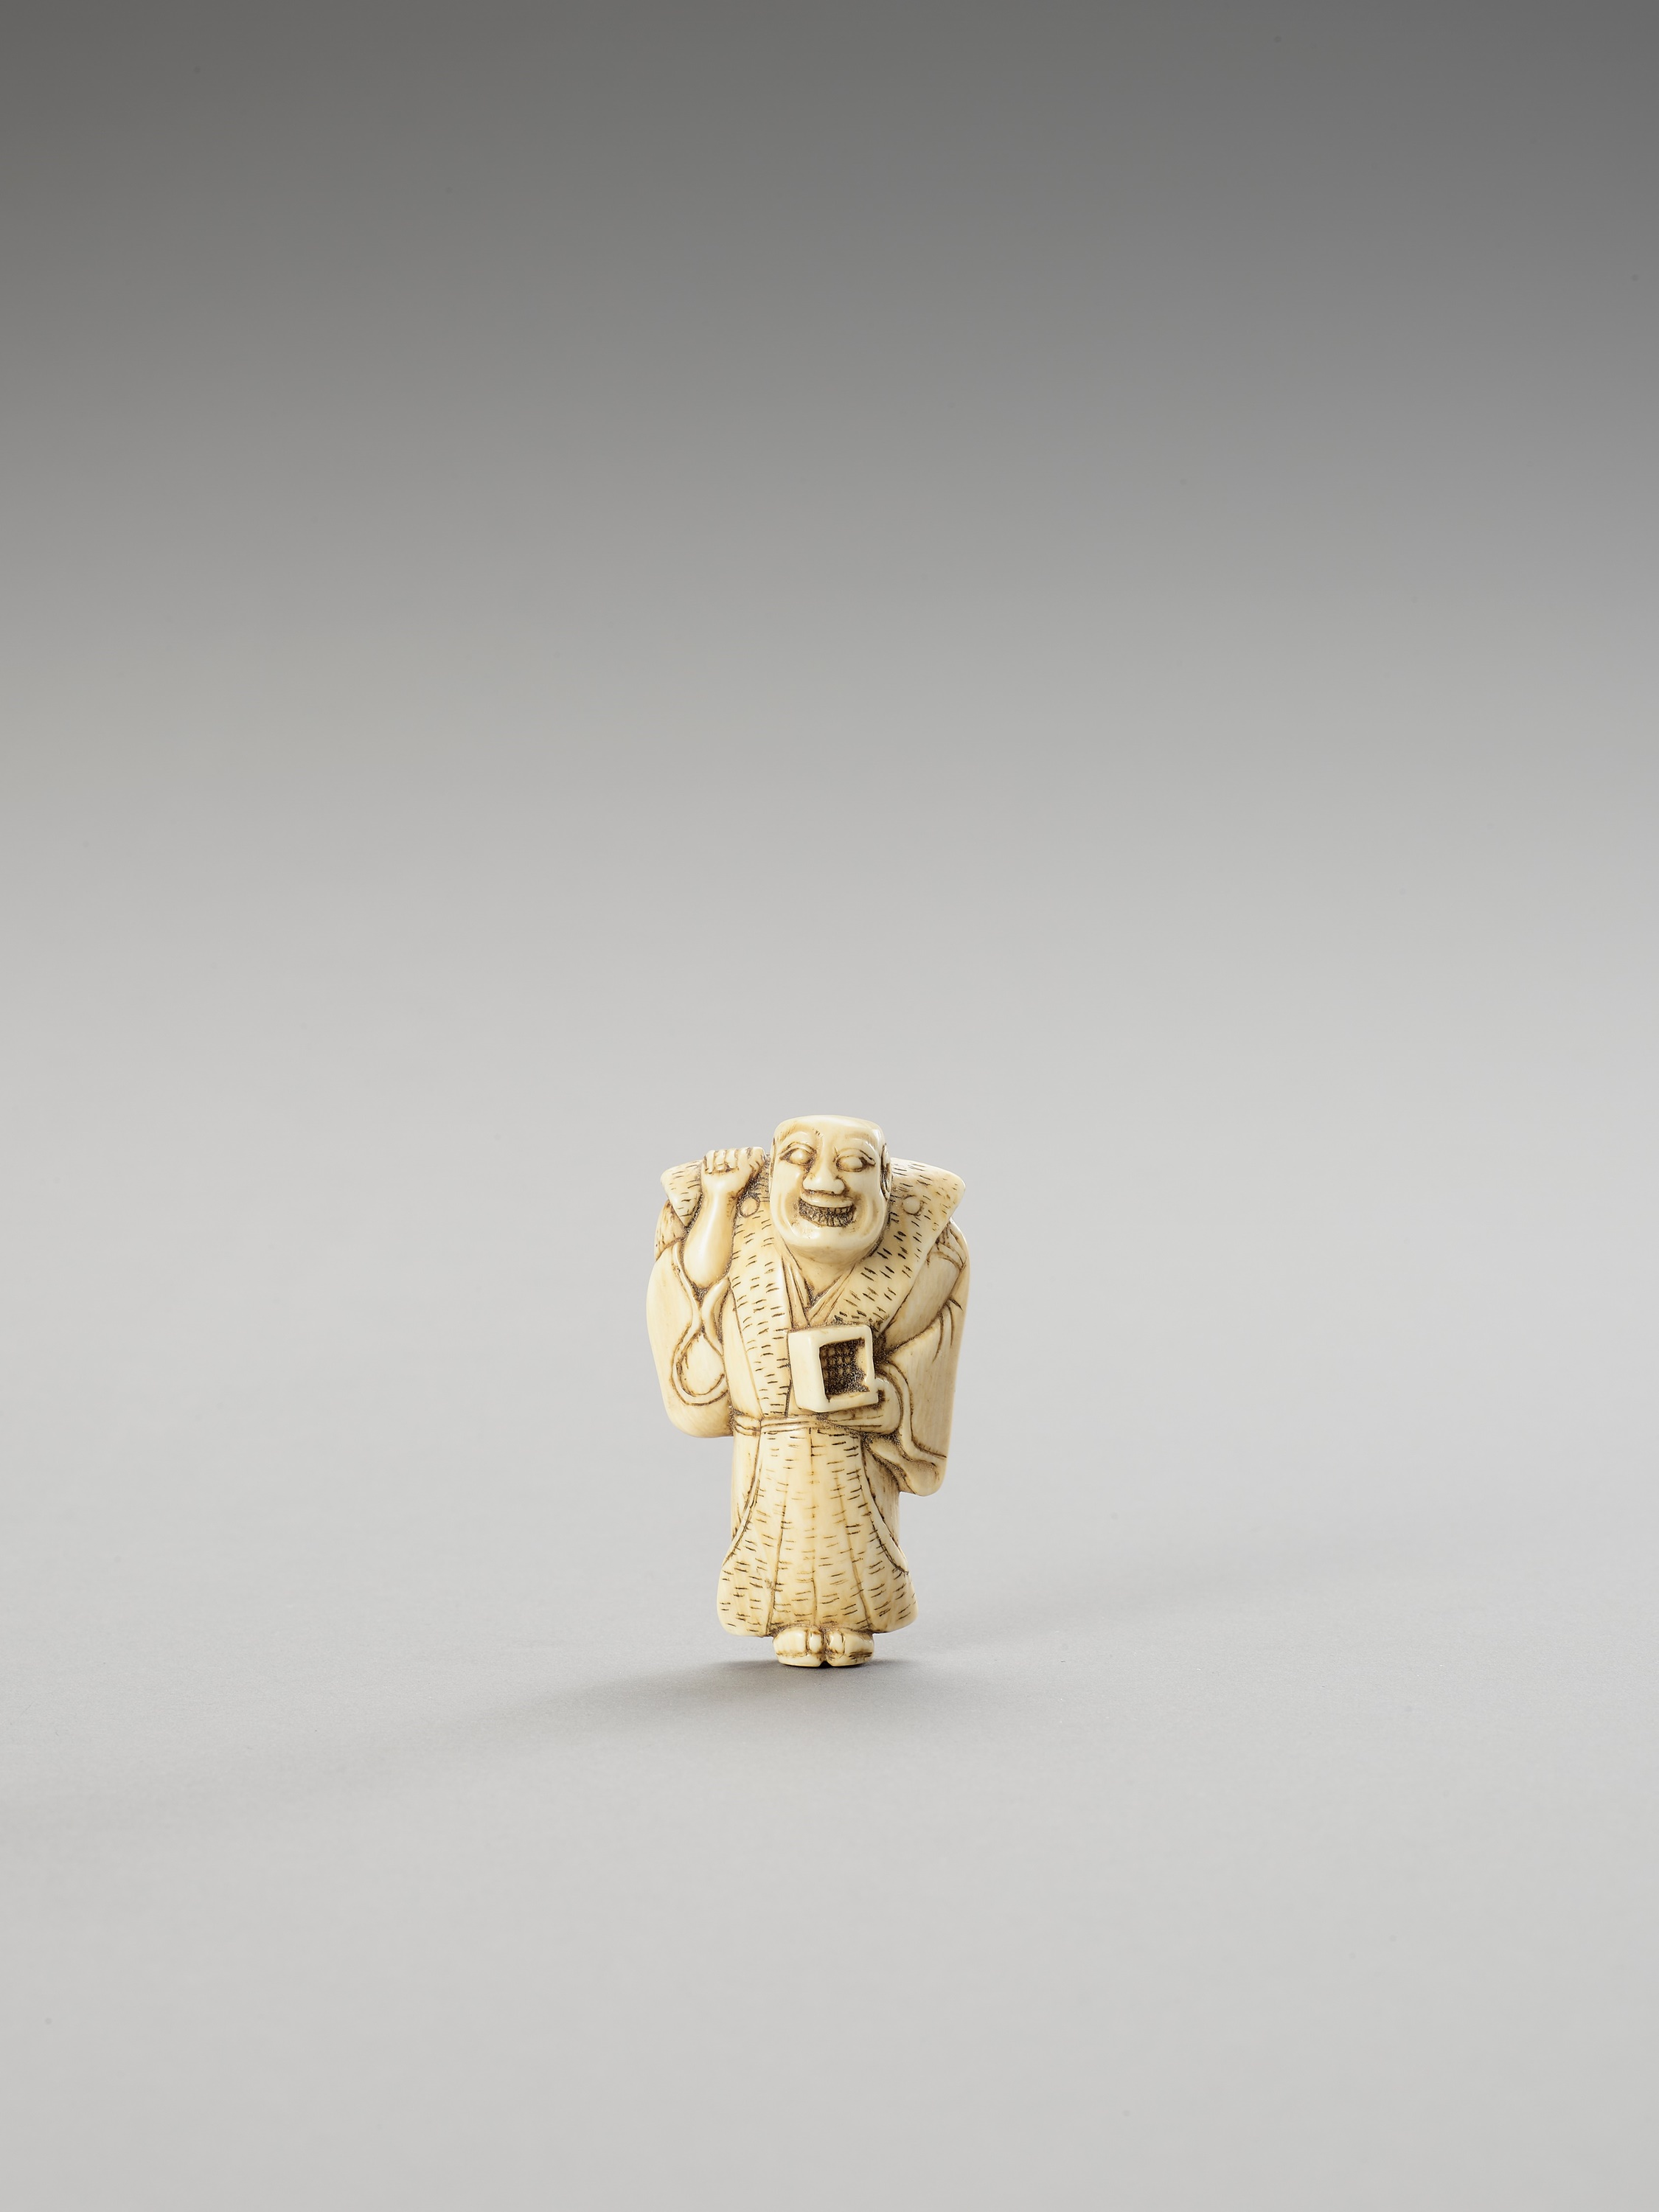 AN IVORY NETSUKE OF A MAN THROWING ROASTED BEANS